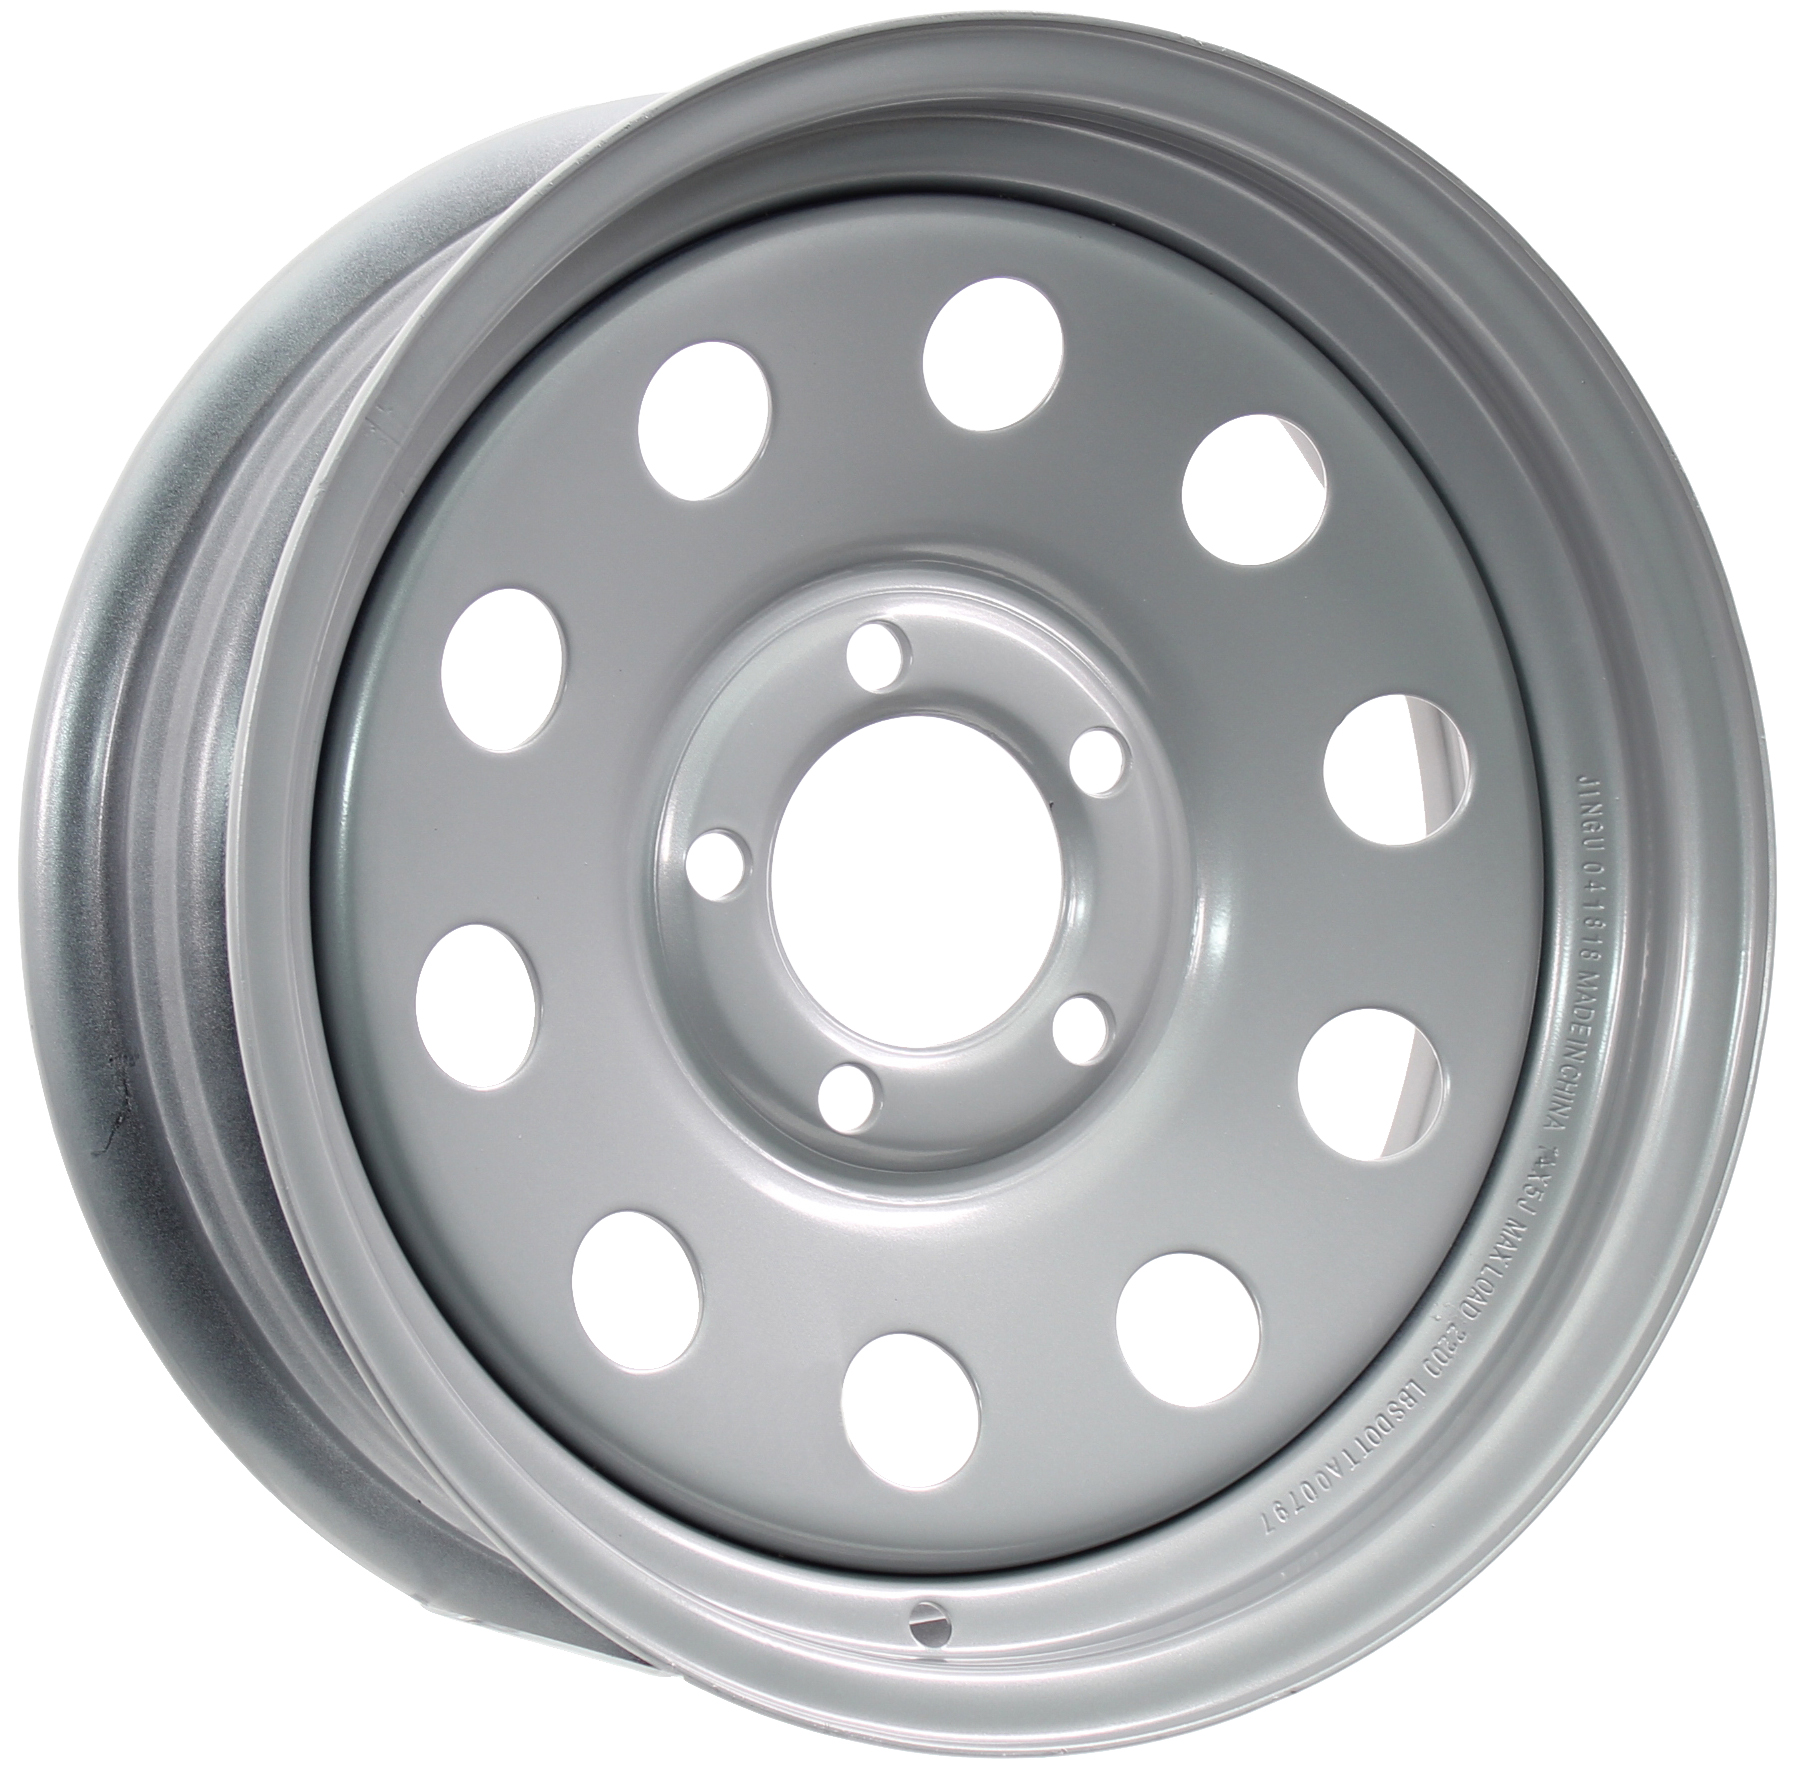 14x5.5 5-Lug Silver Mod Steel Trailer Wheel Image